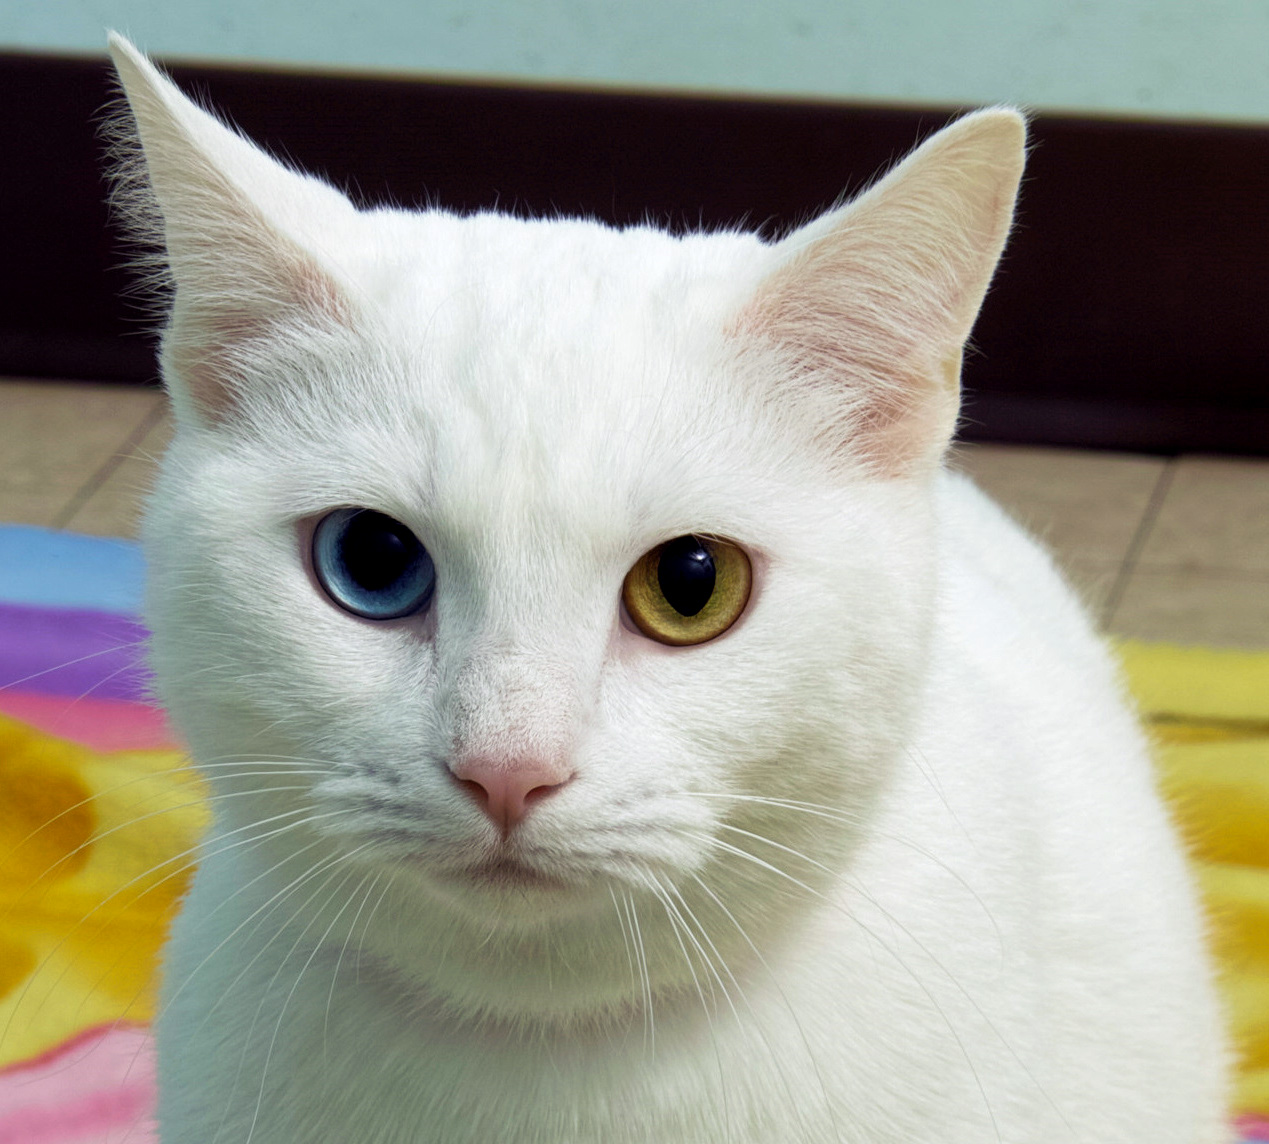 Ginger is 2 years old. She is beautiful solid white with striking eyes! Her ideal home would have many windows for her to watch the birds. She is a friendly young girl. She doesn't mind petting or sitting on a lap every now and then;however, she would prefer to explore her surroundings. Ginger is eagerly waiting to go home with you!